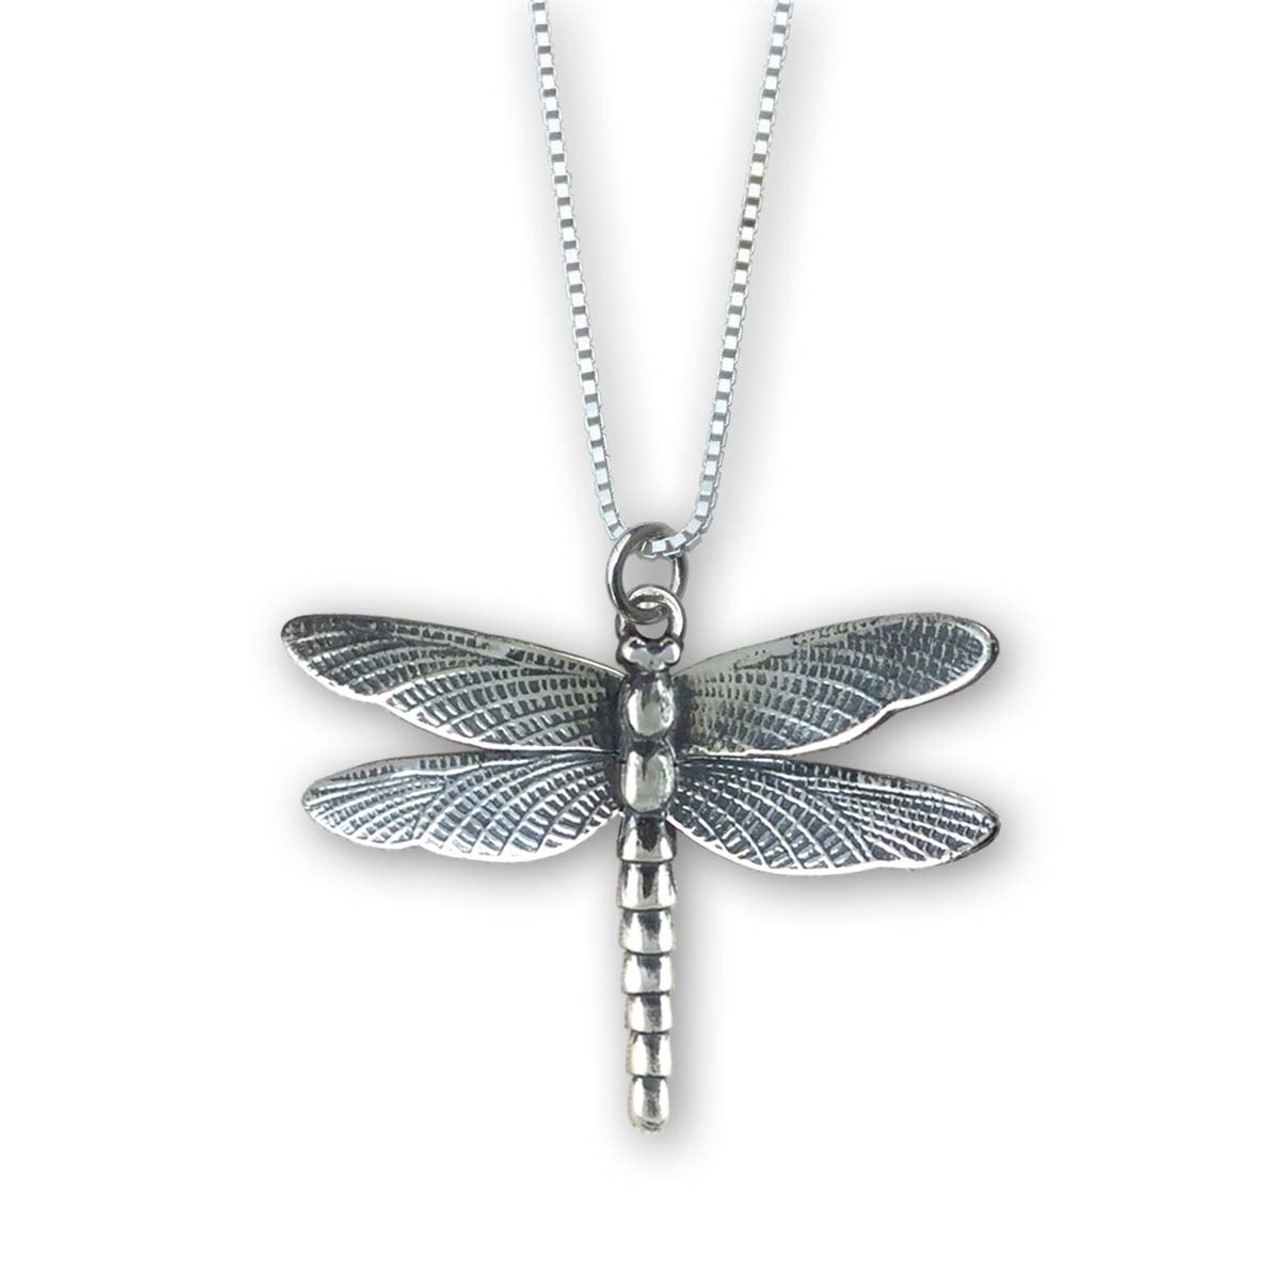 2401d3cb1 Sterling Silver Dragonfly Pendant - JH Breakell & Co.